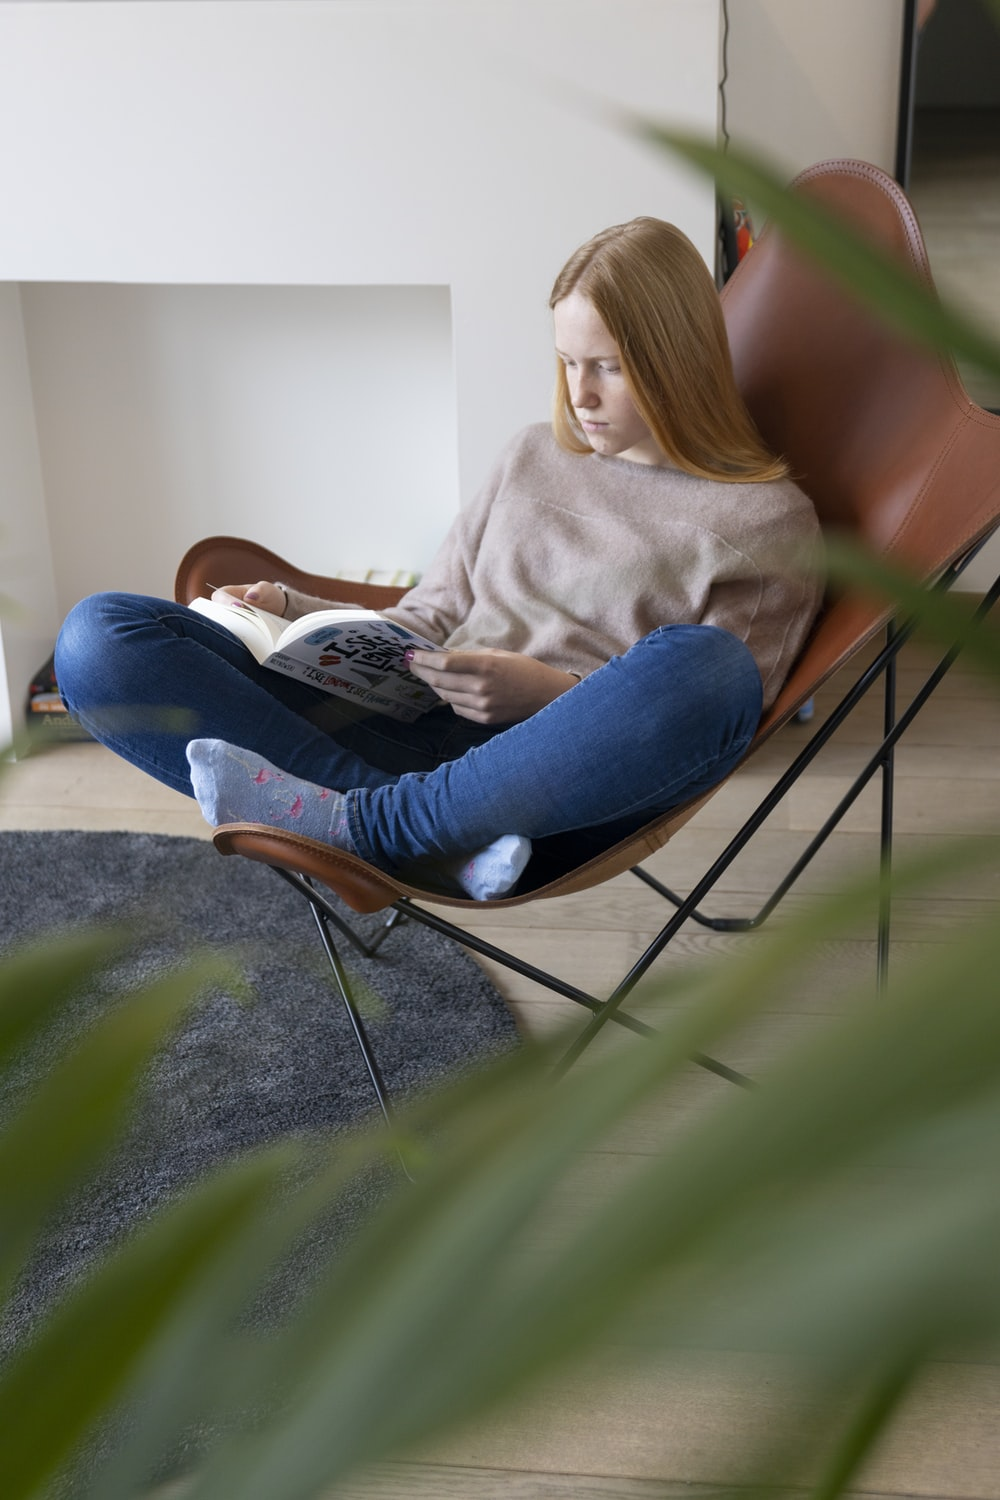 woman in gray sweater and blue denim jeans sitting on gray concrete floor